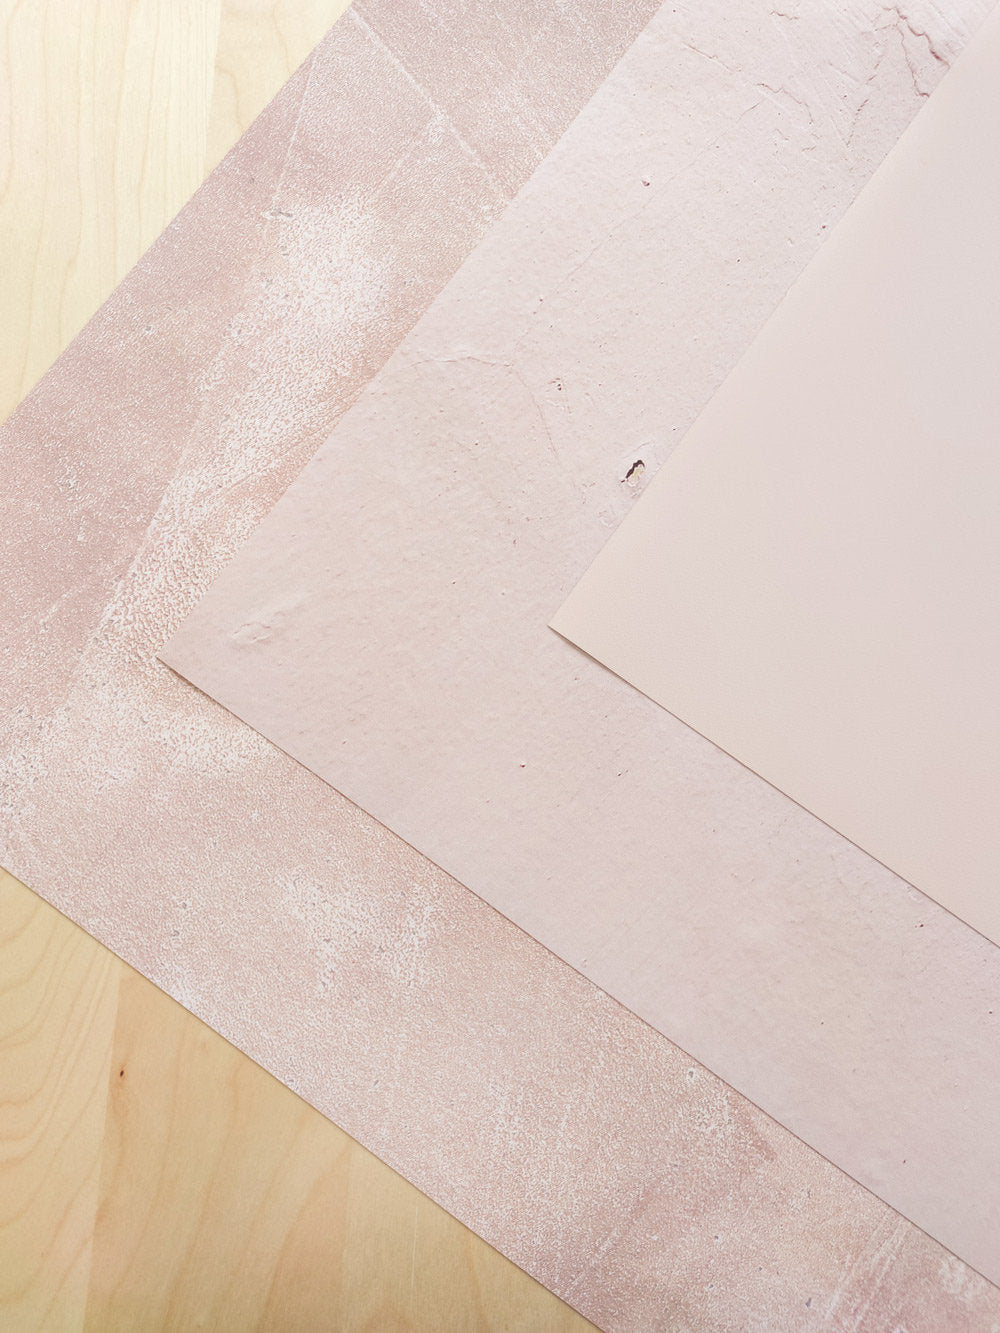 Photography Backdrop plaster pink for Product, Instagram, Flat lay & Food - Lov2046